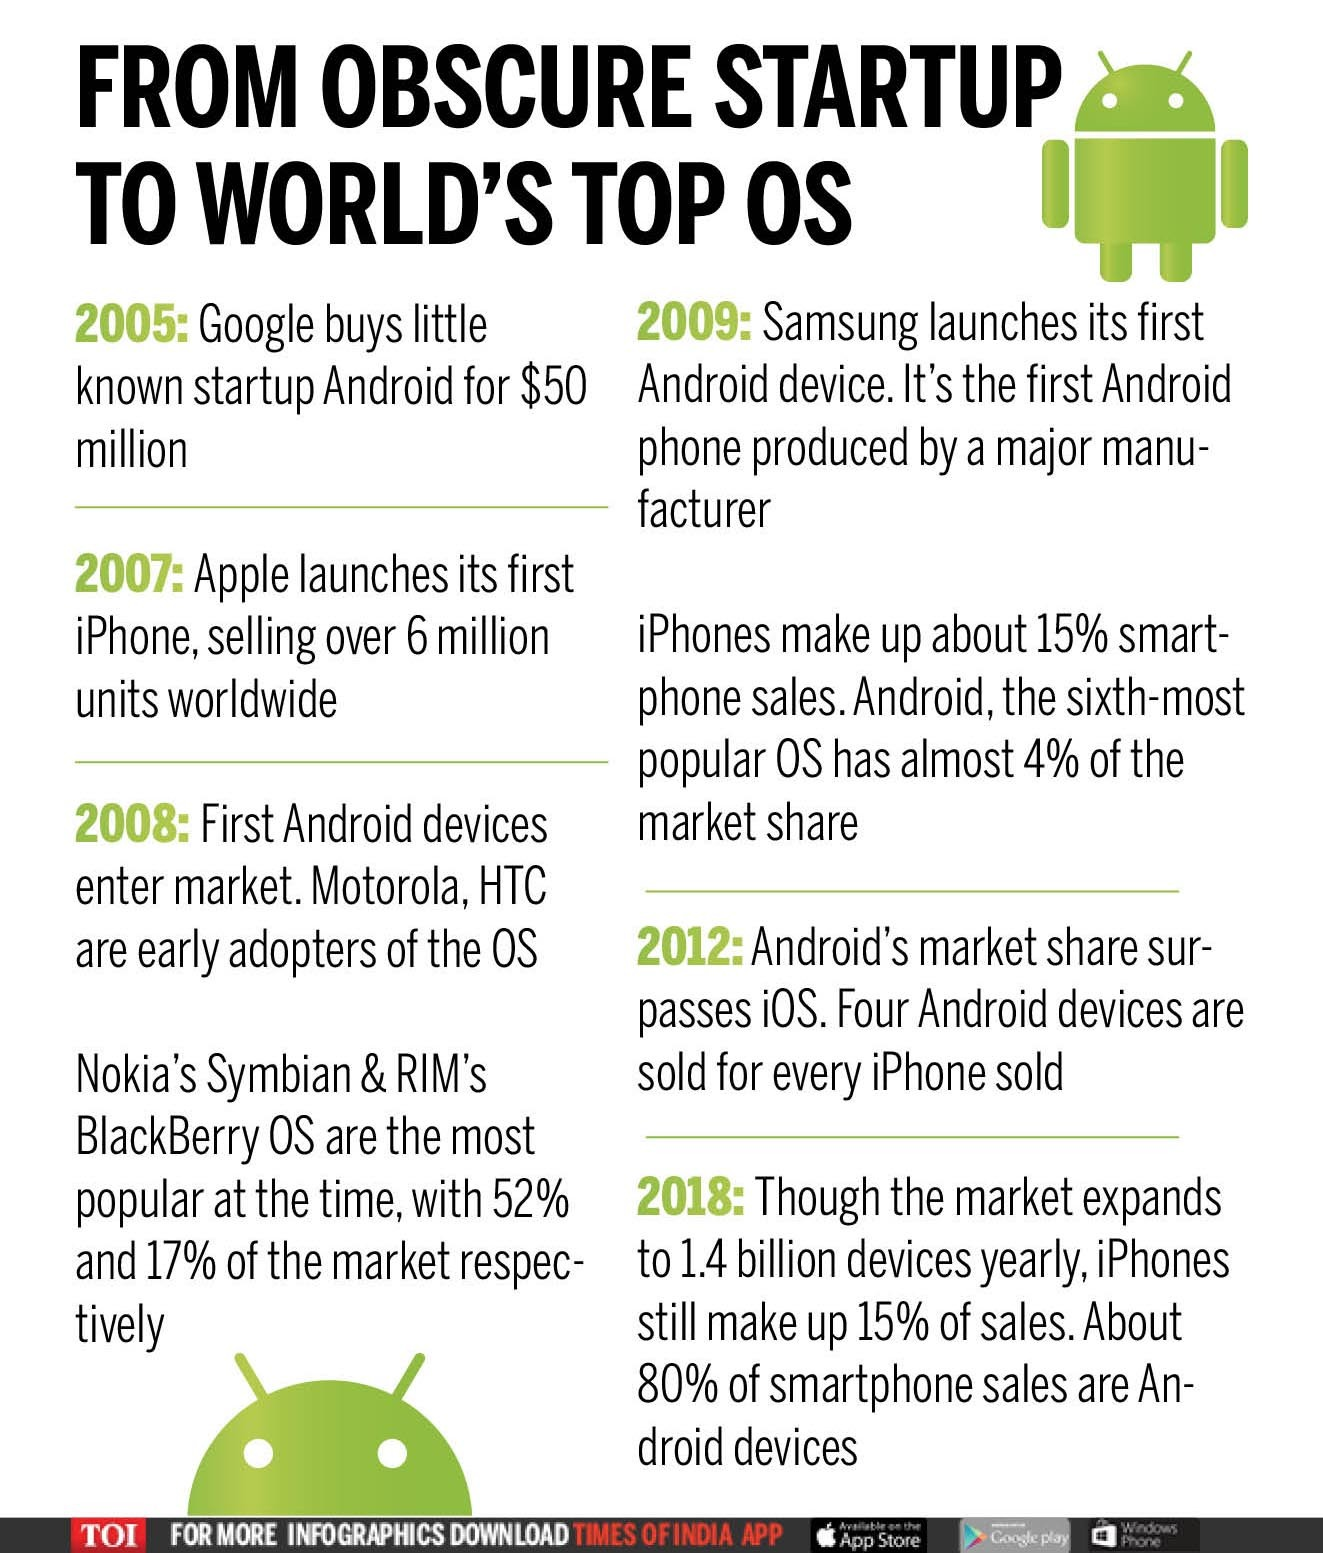 FROM OBSCURE STARTUP TO WORLD'S TOP OS